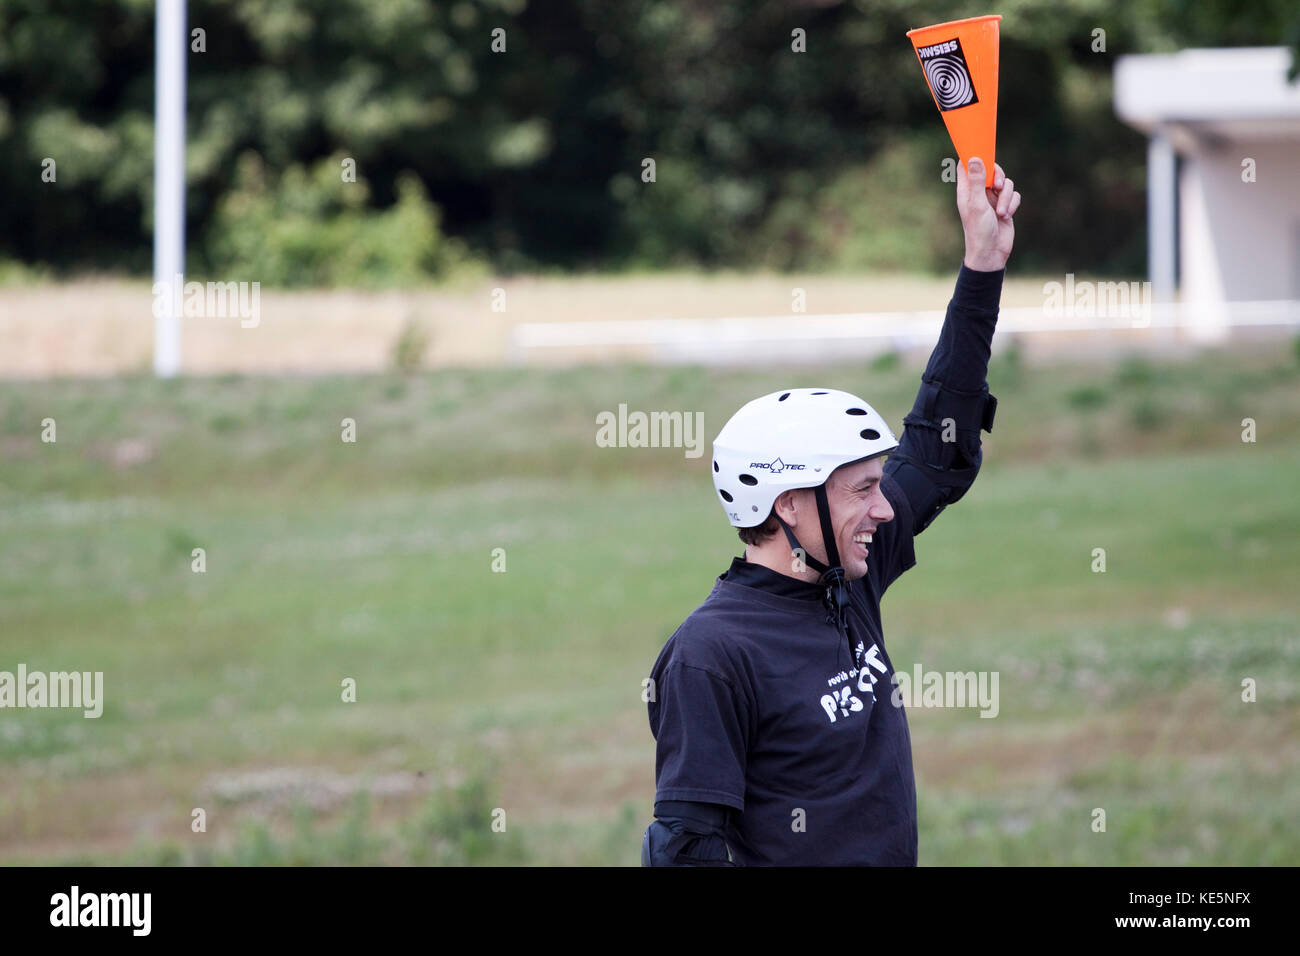 Competitor in a downhill skateboard slalom holding up a cone to indicate it had been touched - Stock Image